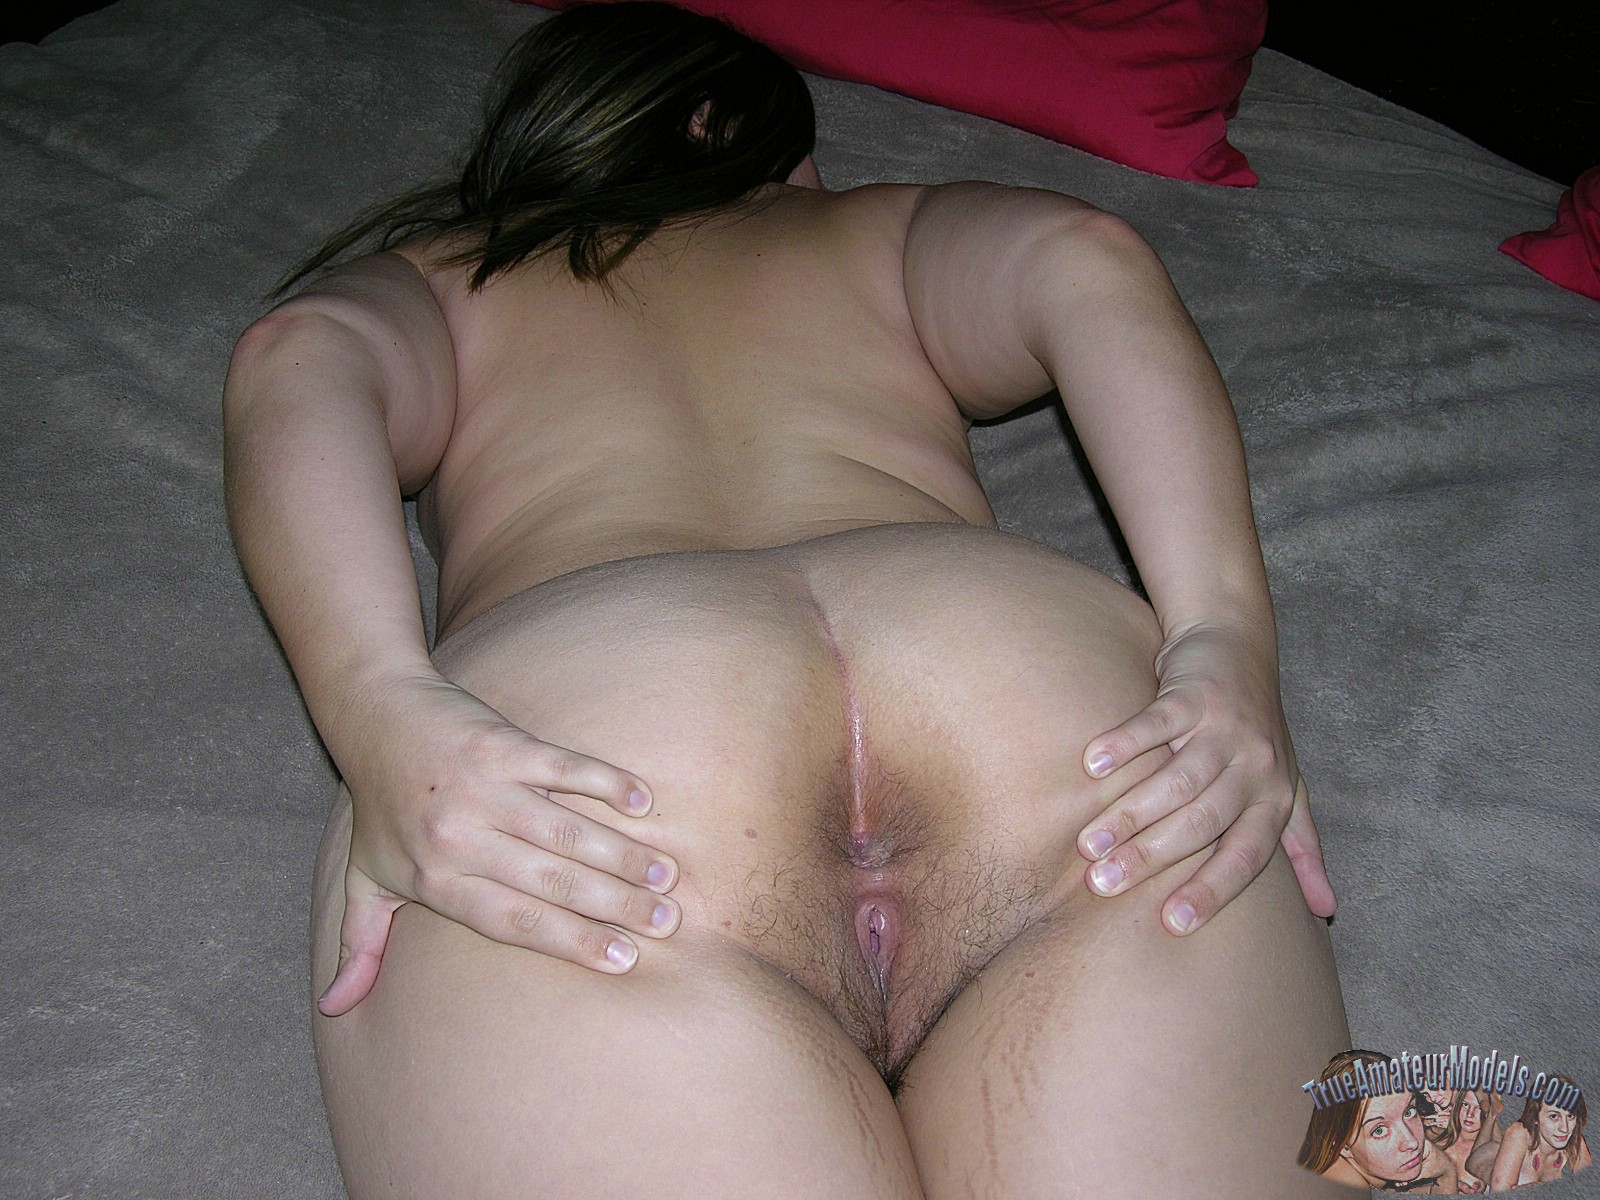 Hairy bbw nude models